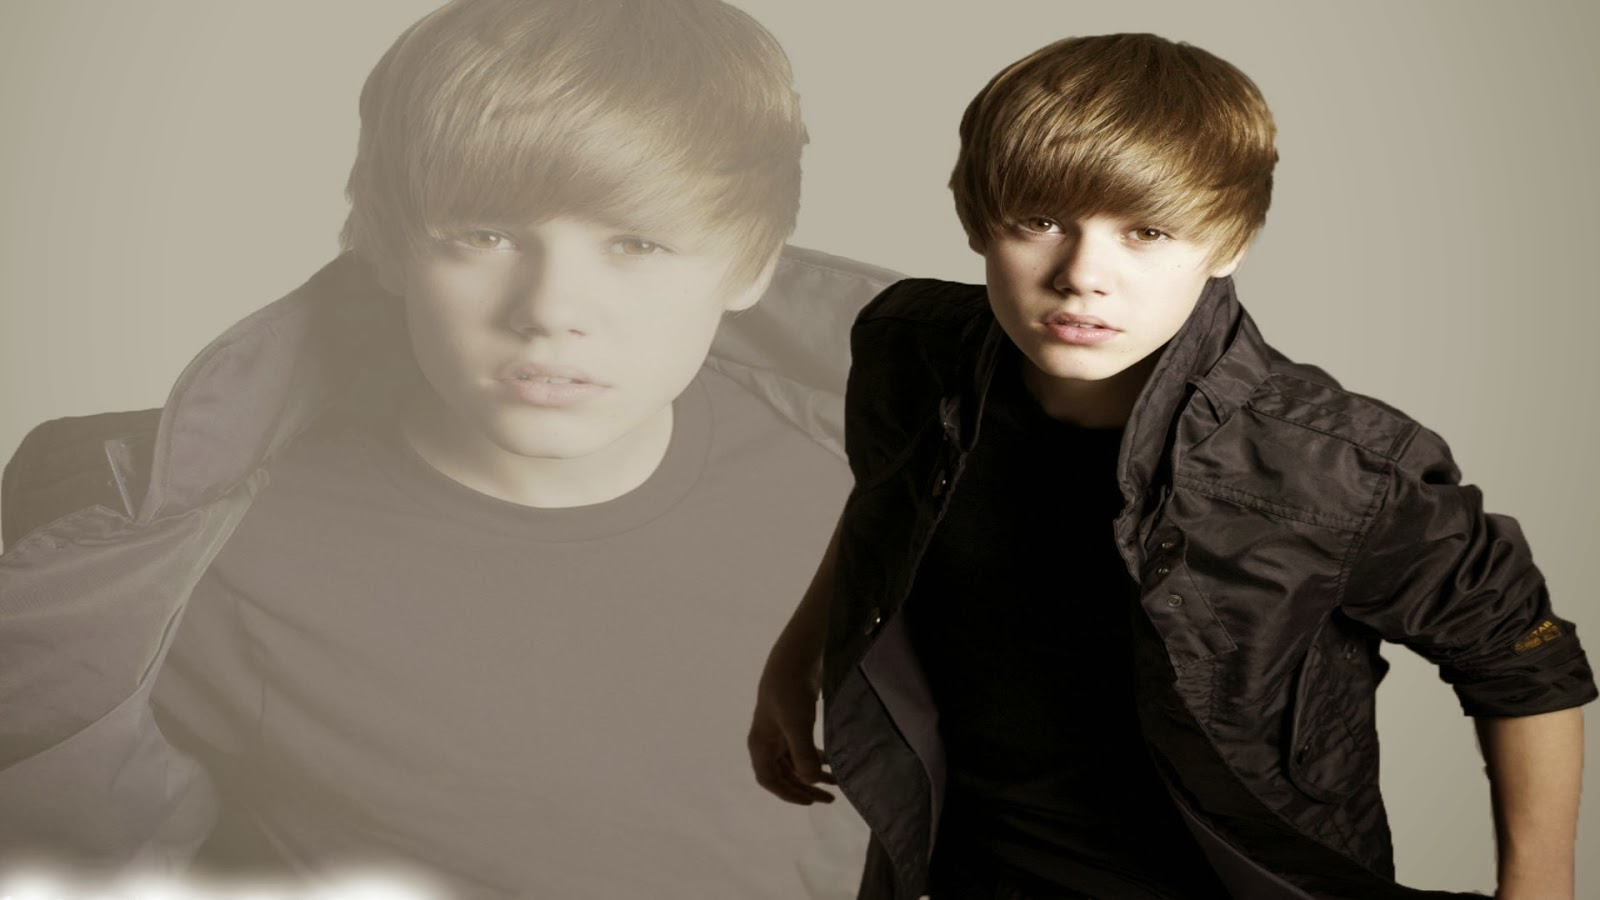 Justin Biber Photo Dwnld: All Hot Informations: Download Justin Bieber HD Wallpapers